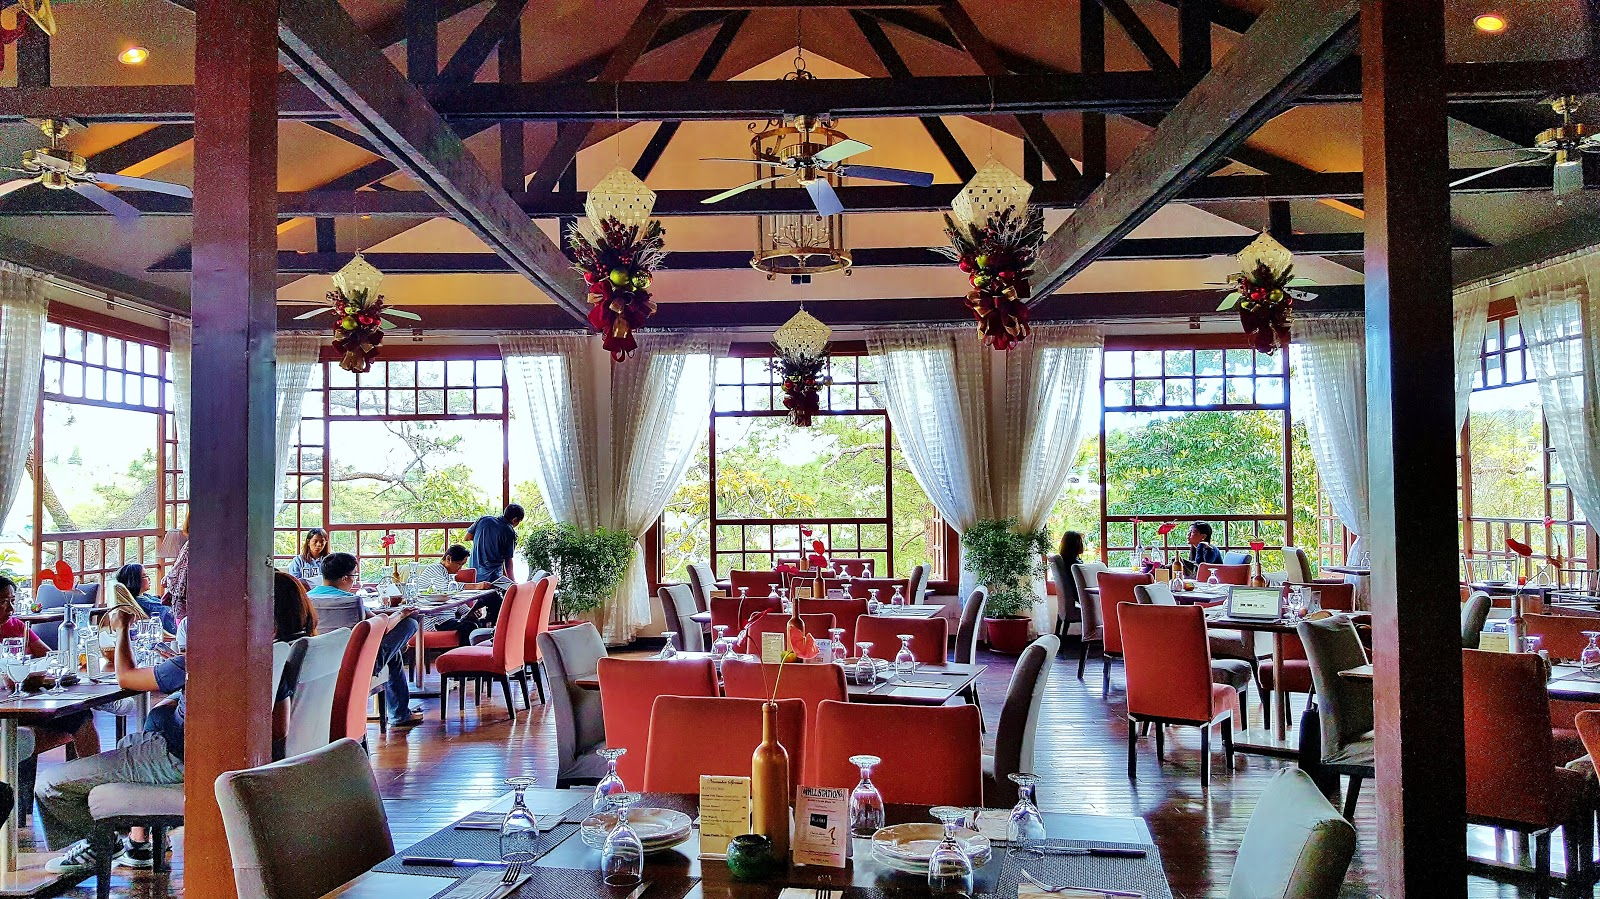 Hill Station Restaurant, Baguio City